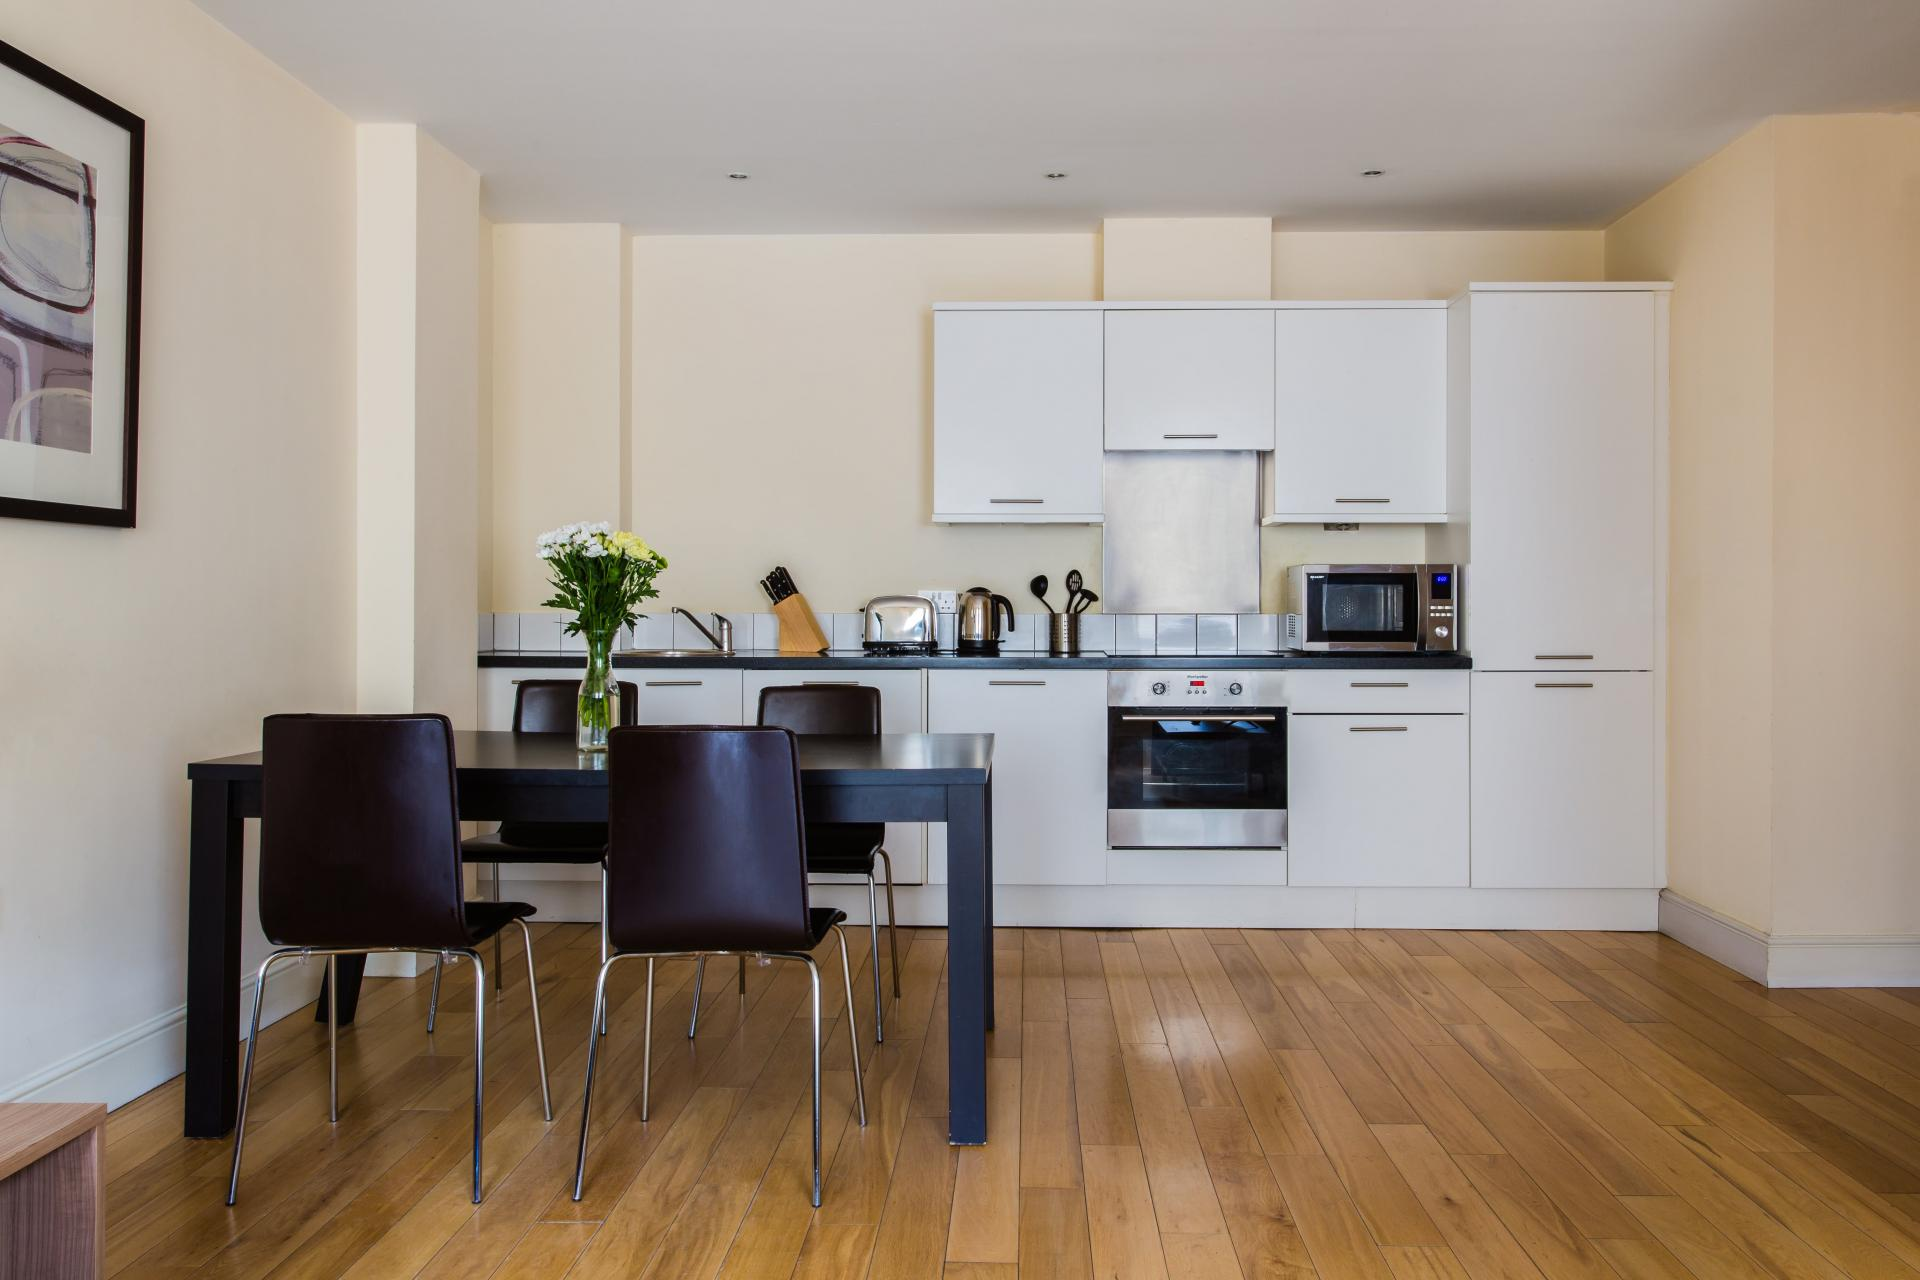 Kitchen at Reading Central Apartments, Centre, Reading - Citybase Apartments